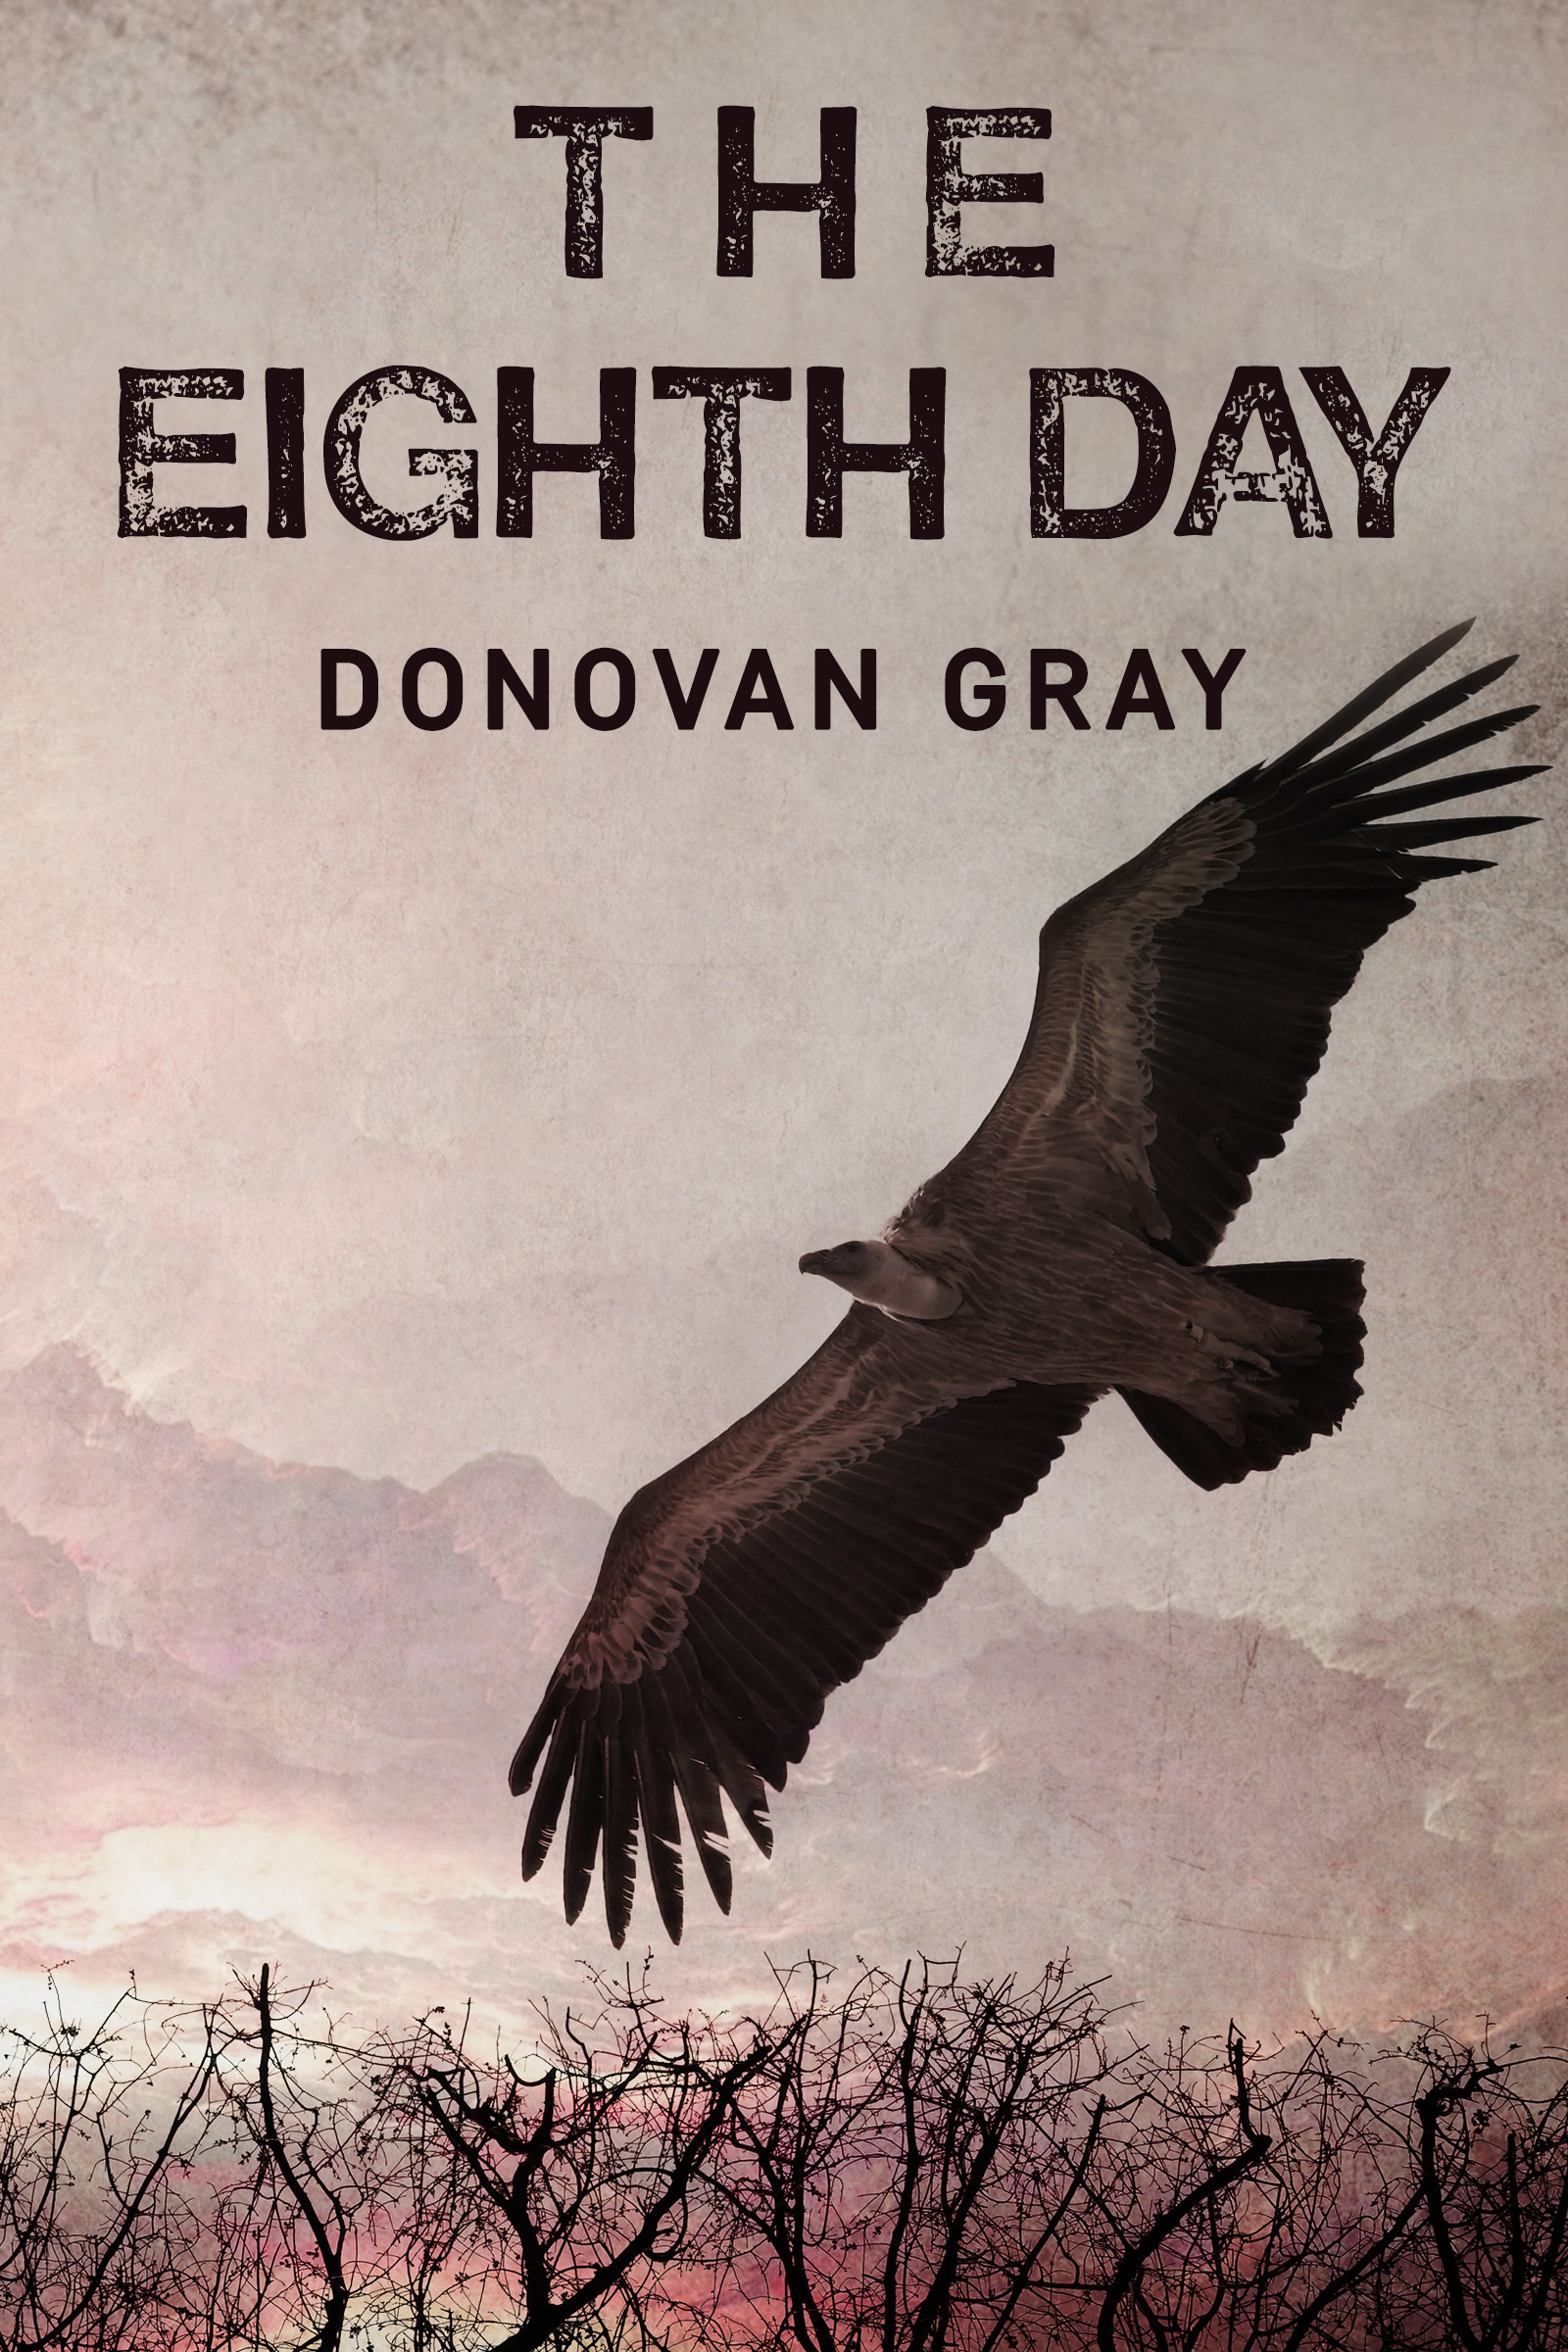 The eighth day n/a